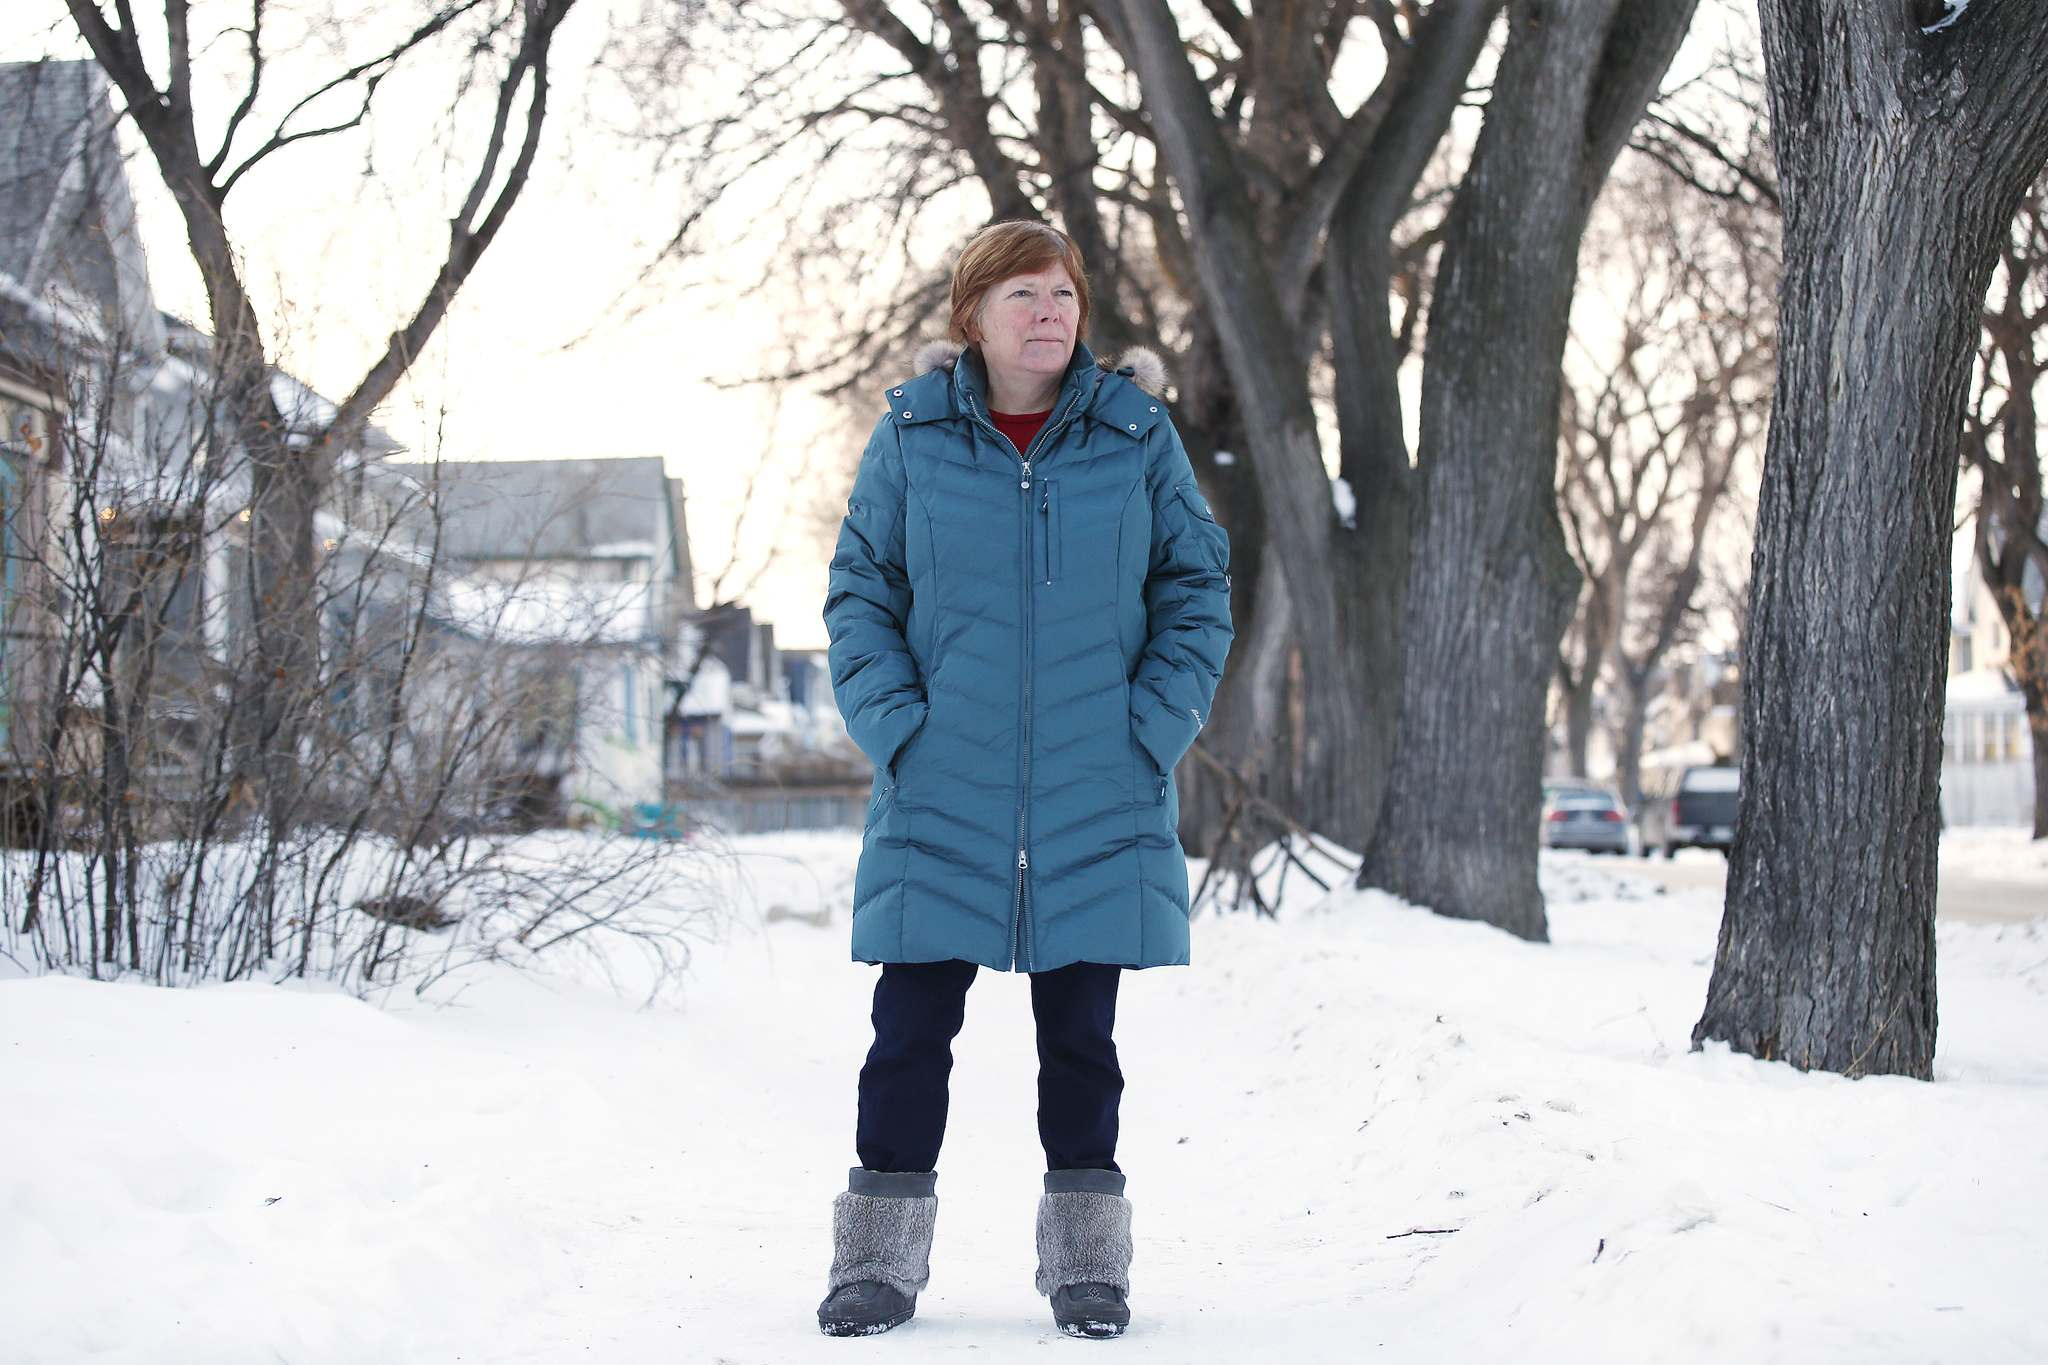 """JOHN WOODS / WINNIPEG FREE PRESS<p> """"We couldn't really get together and celebrate Christmas with them, which was kind of a bummer, but I understand why,"""" Hanuschuk said."""